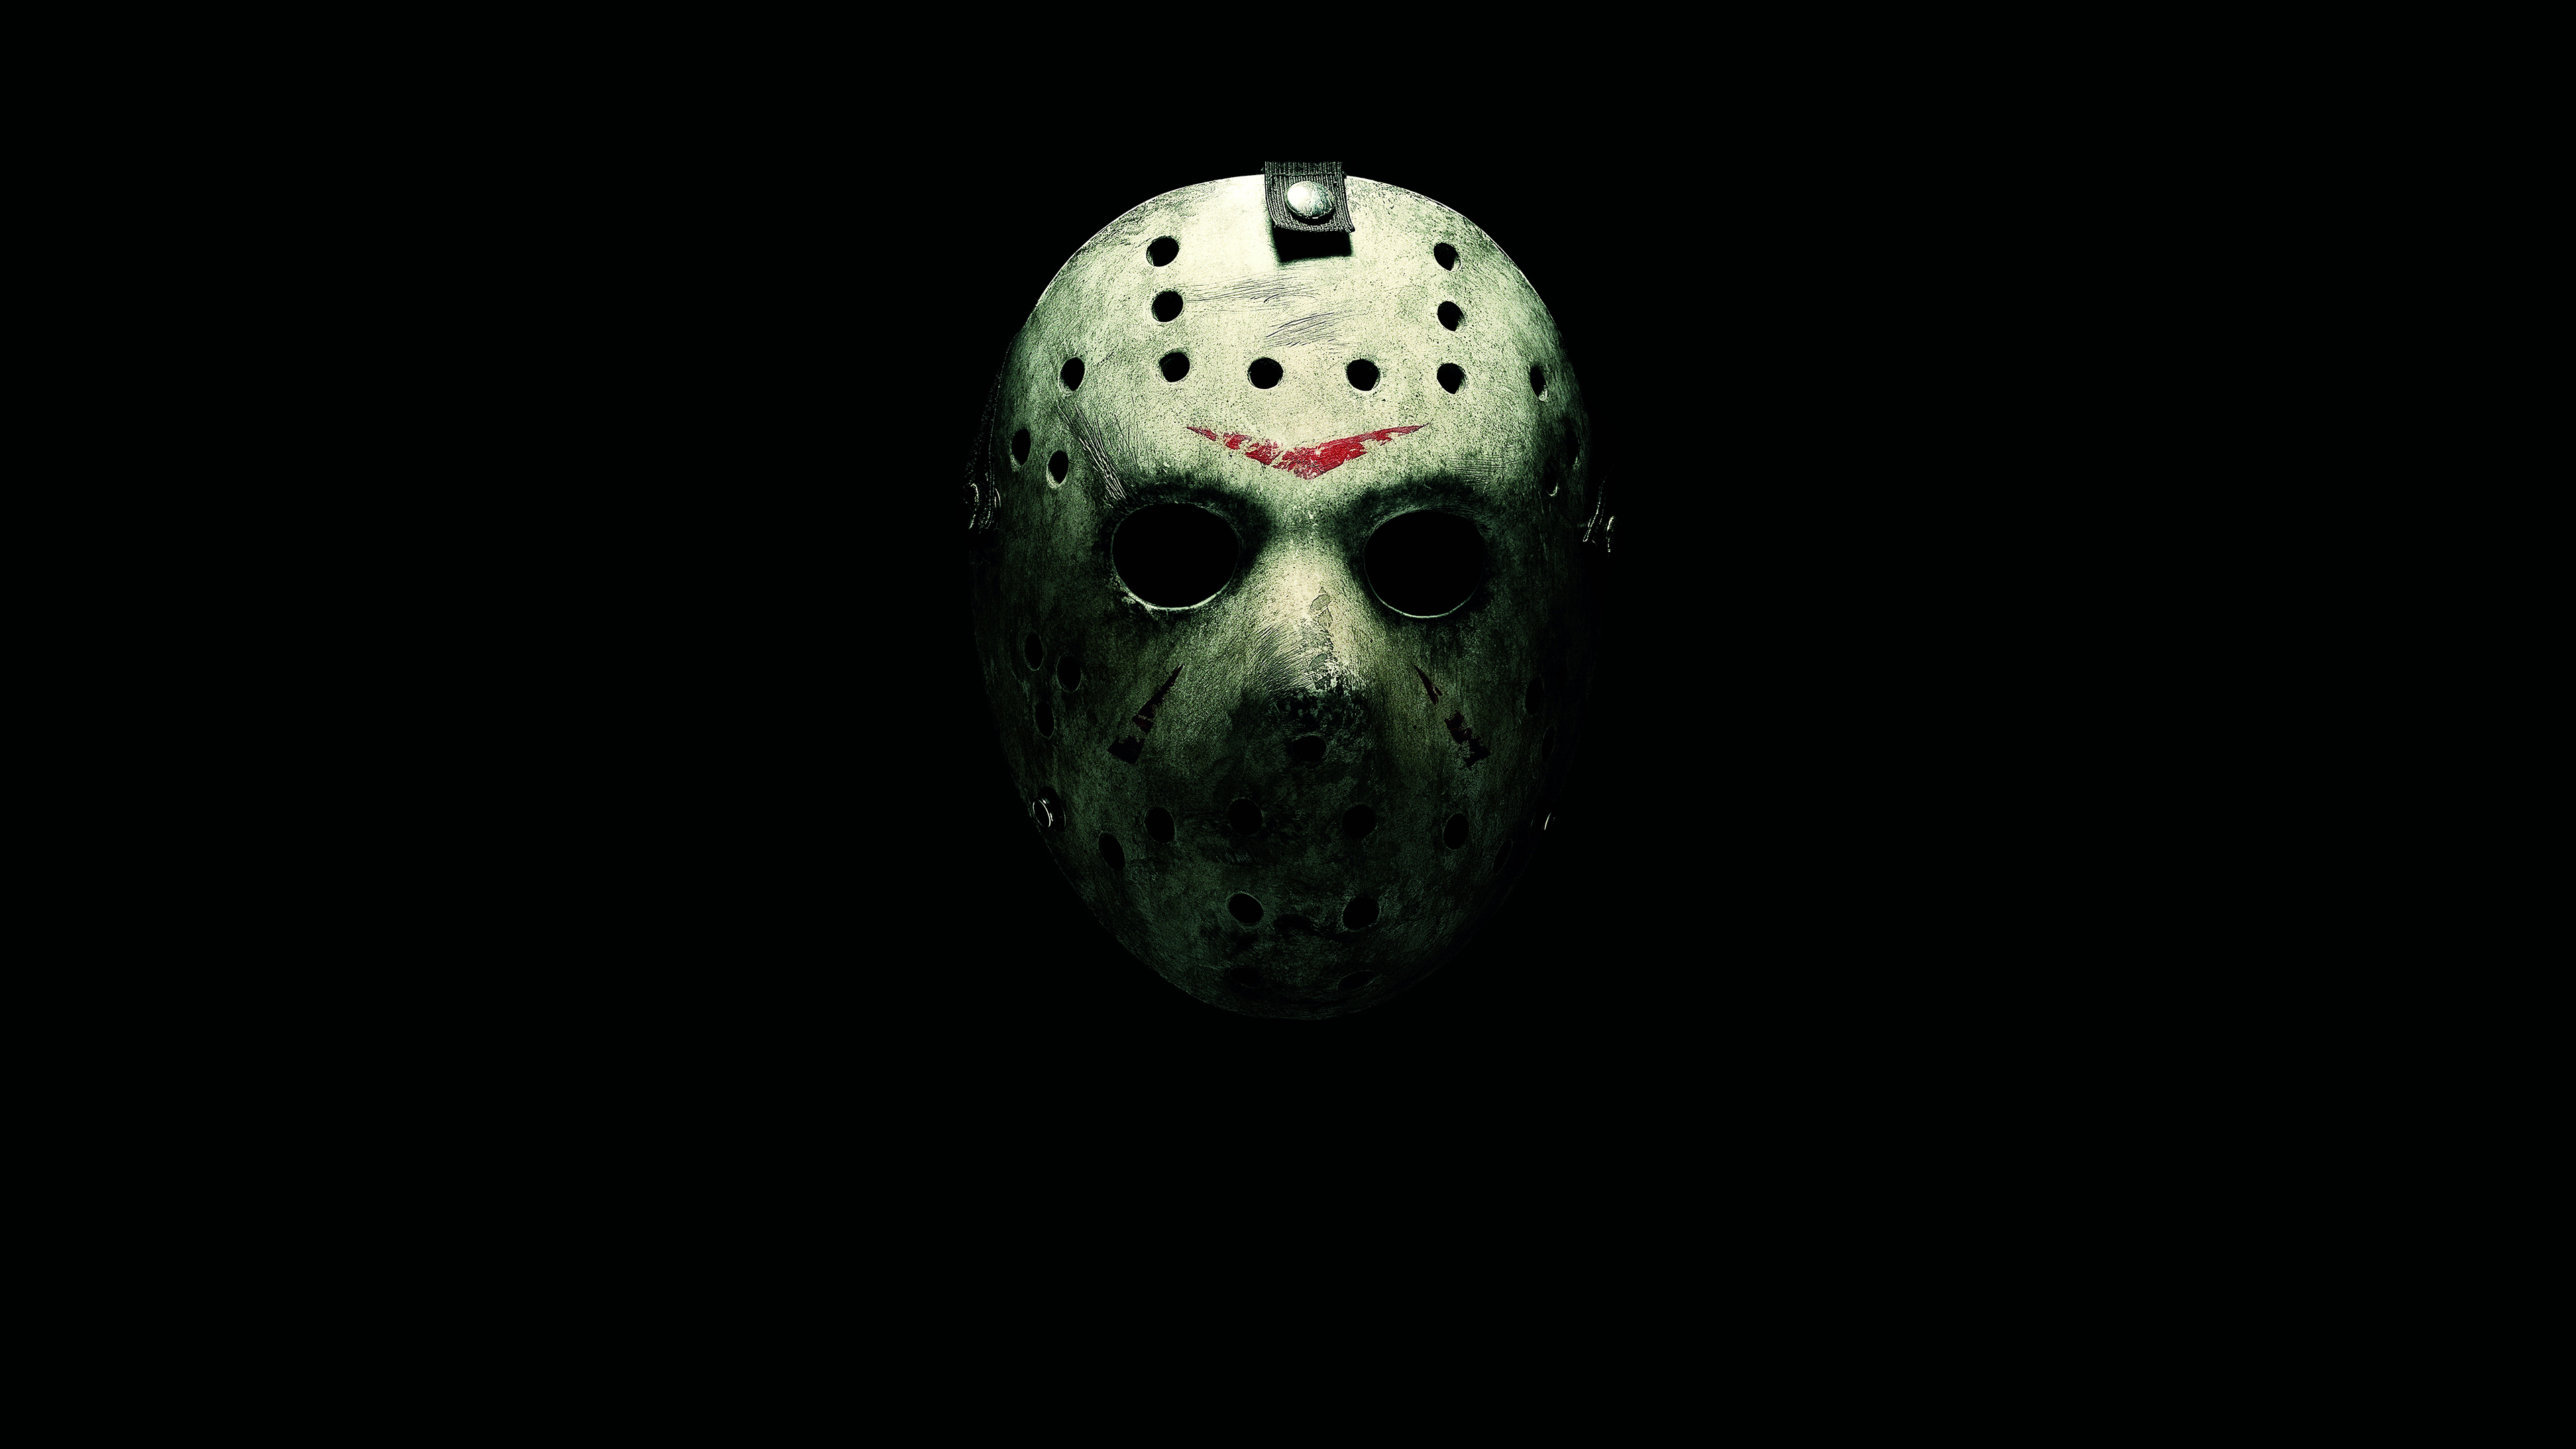 friday the 13th 4k 1558221209 - Friday The 13th 4k - mask wallpapers, hd-wallpapers, games wallpapers, friday the 13th the games wallpapers, 4k-wallpapers, 2019 games wallpapers